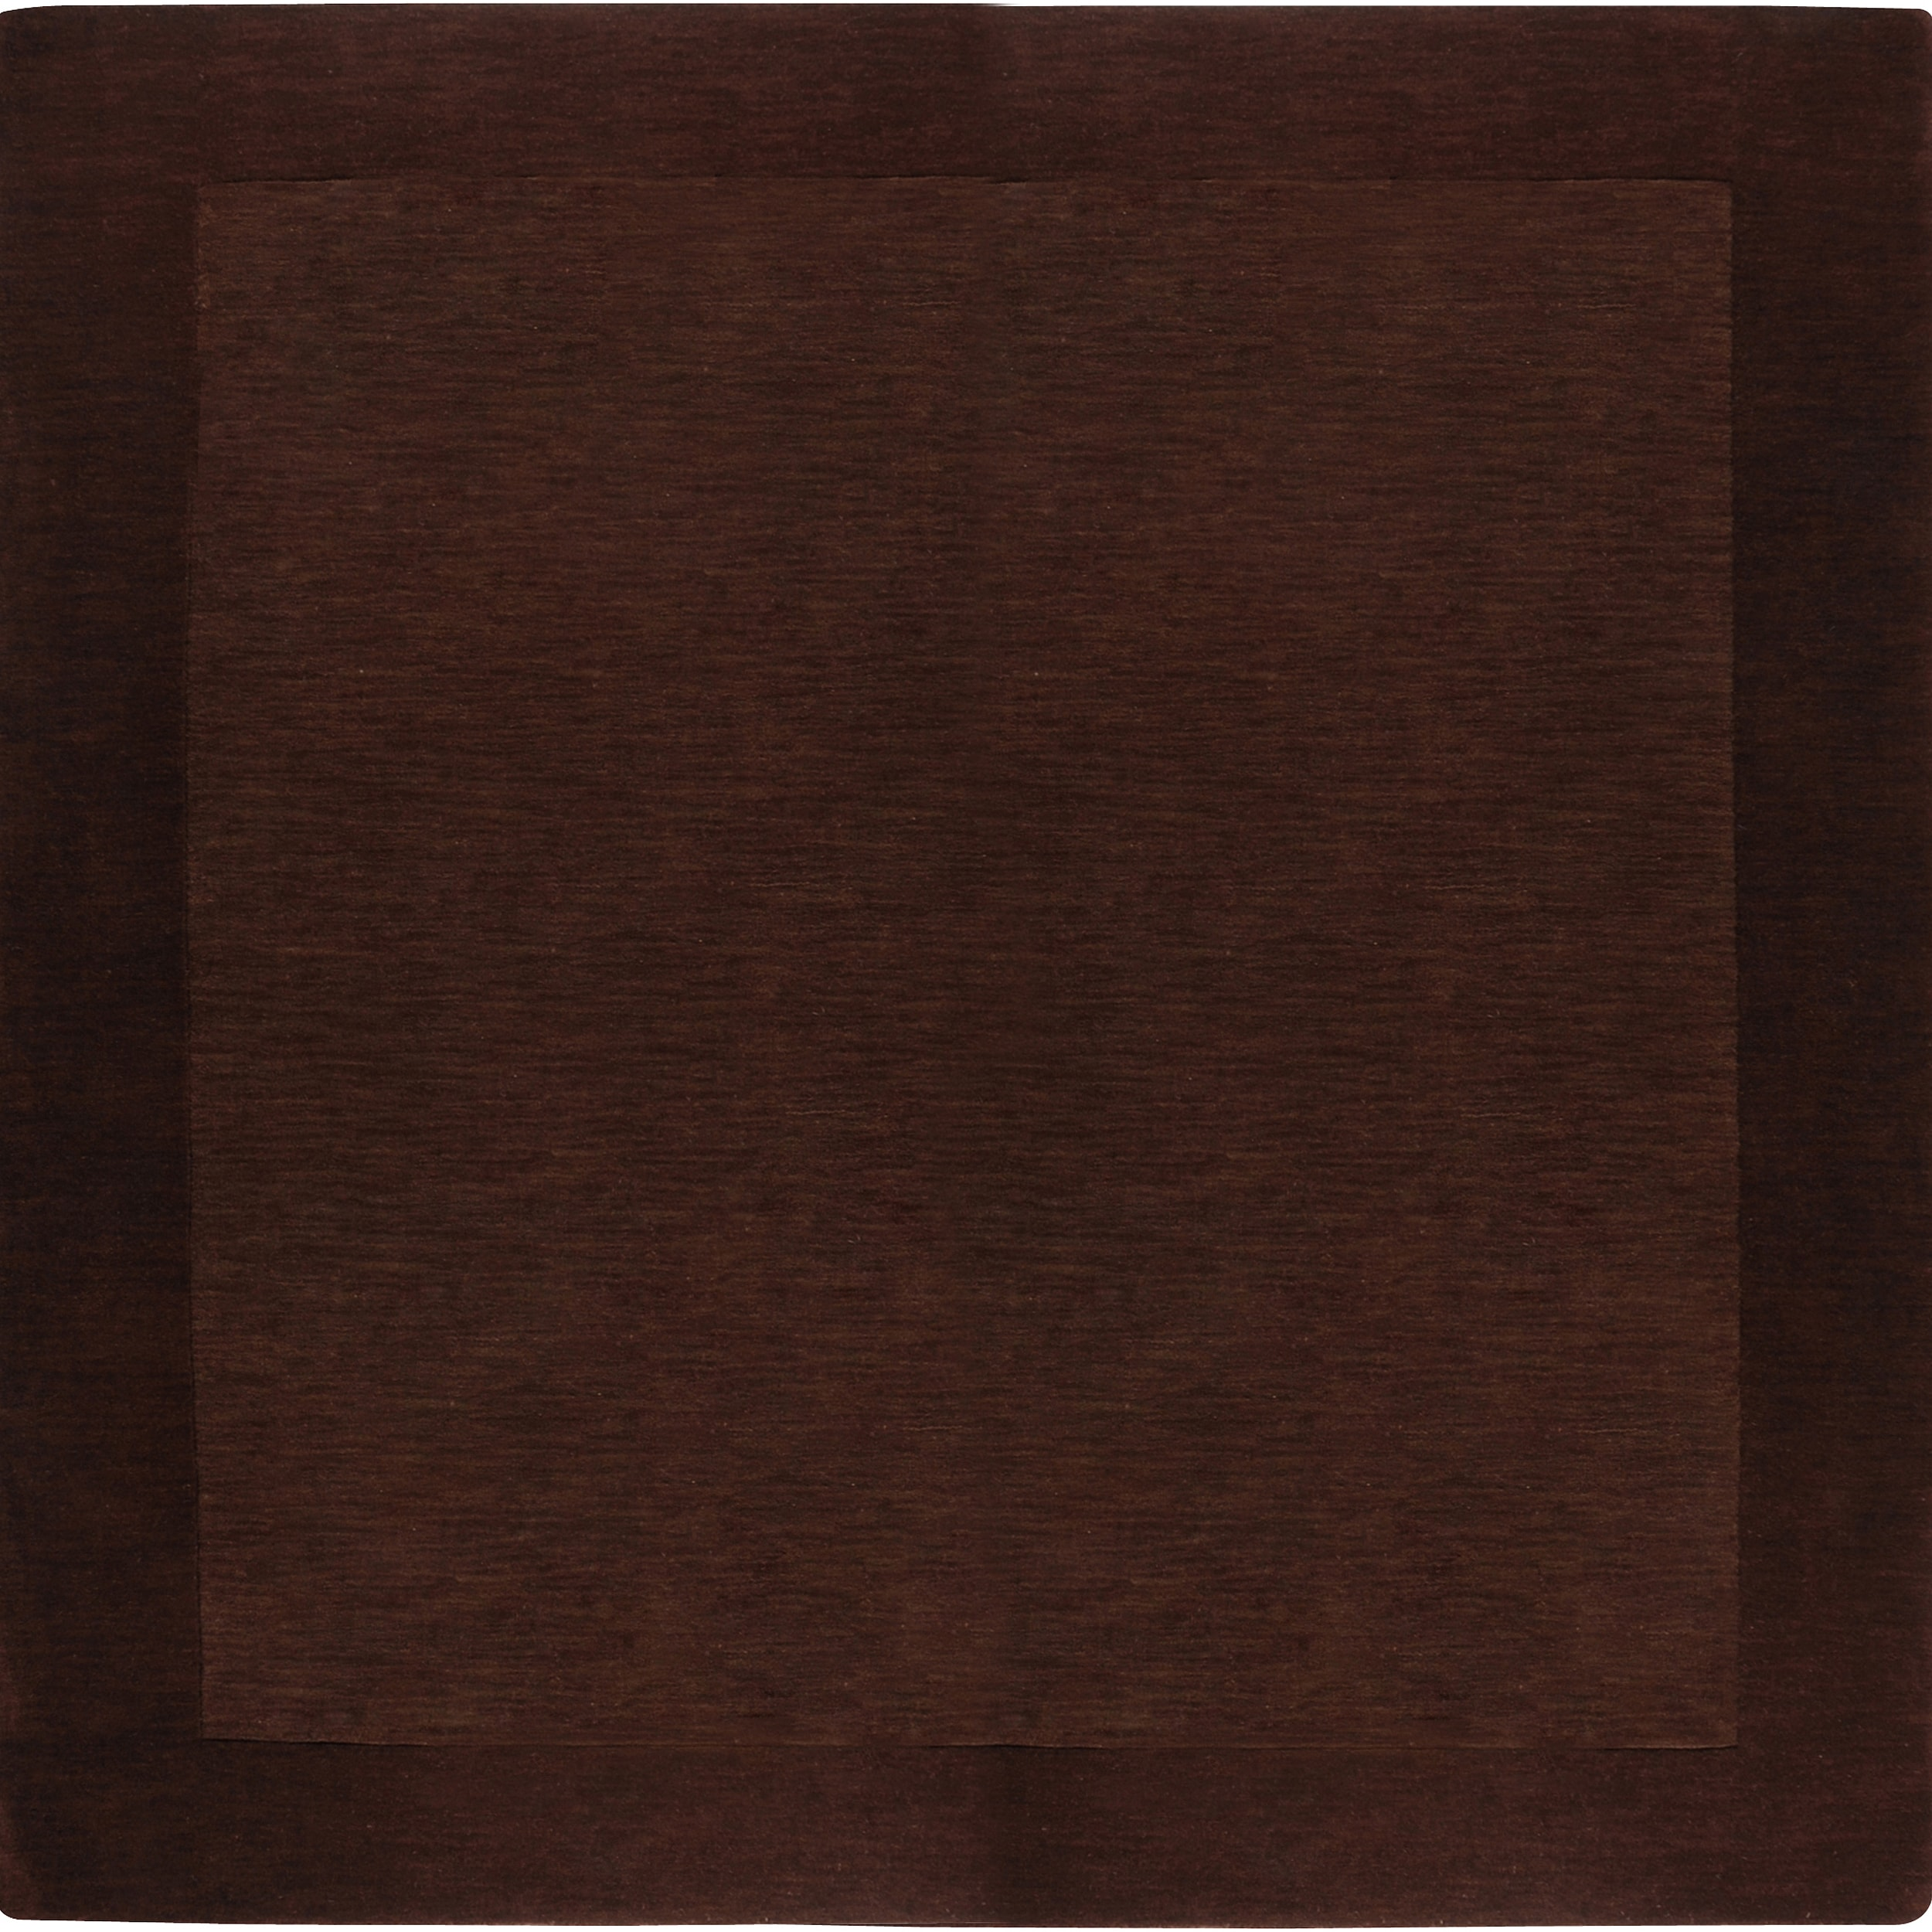 Hand-crafted Solid Brown Tone-On-Tone Bordered Counter Wool Rug (8' Square)